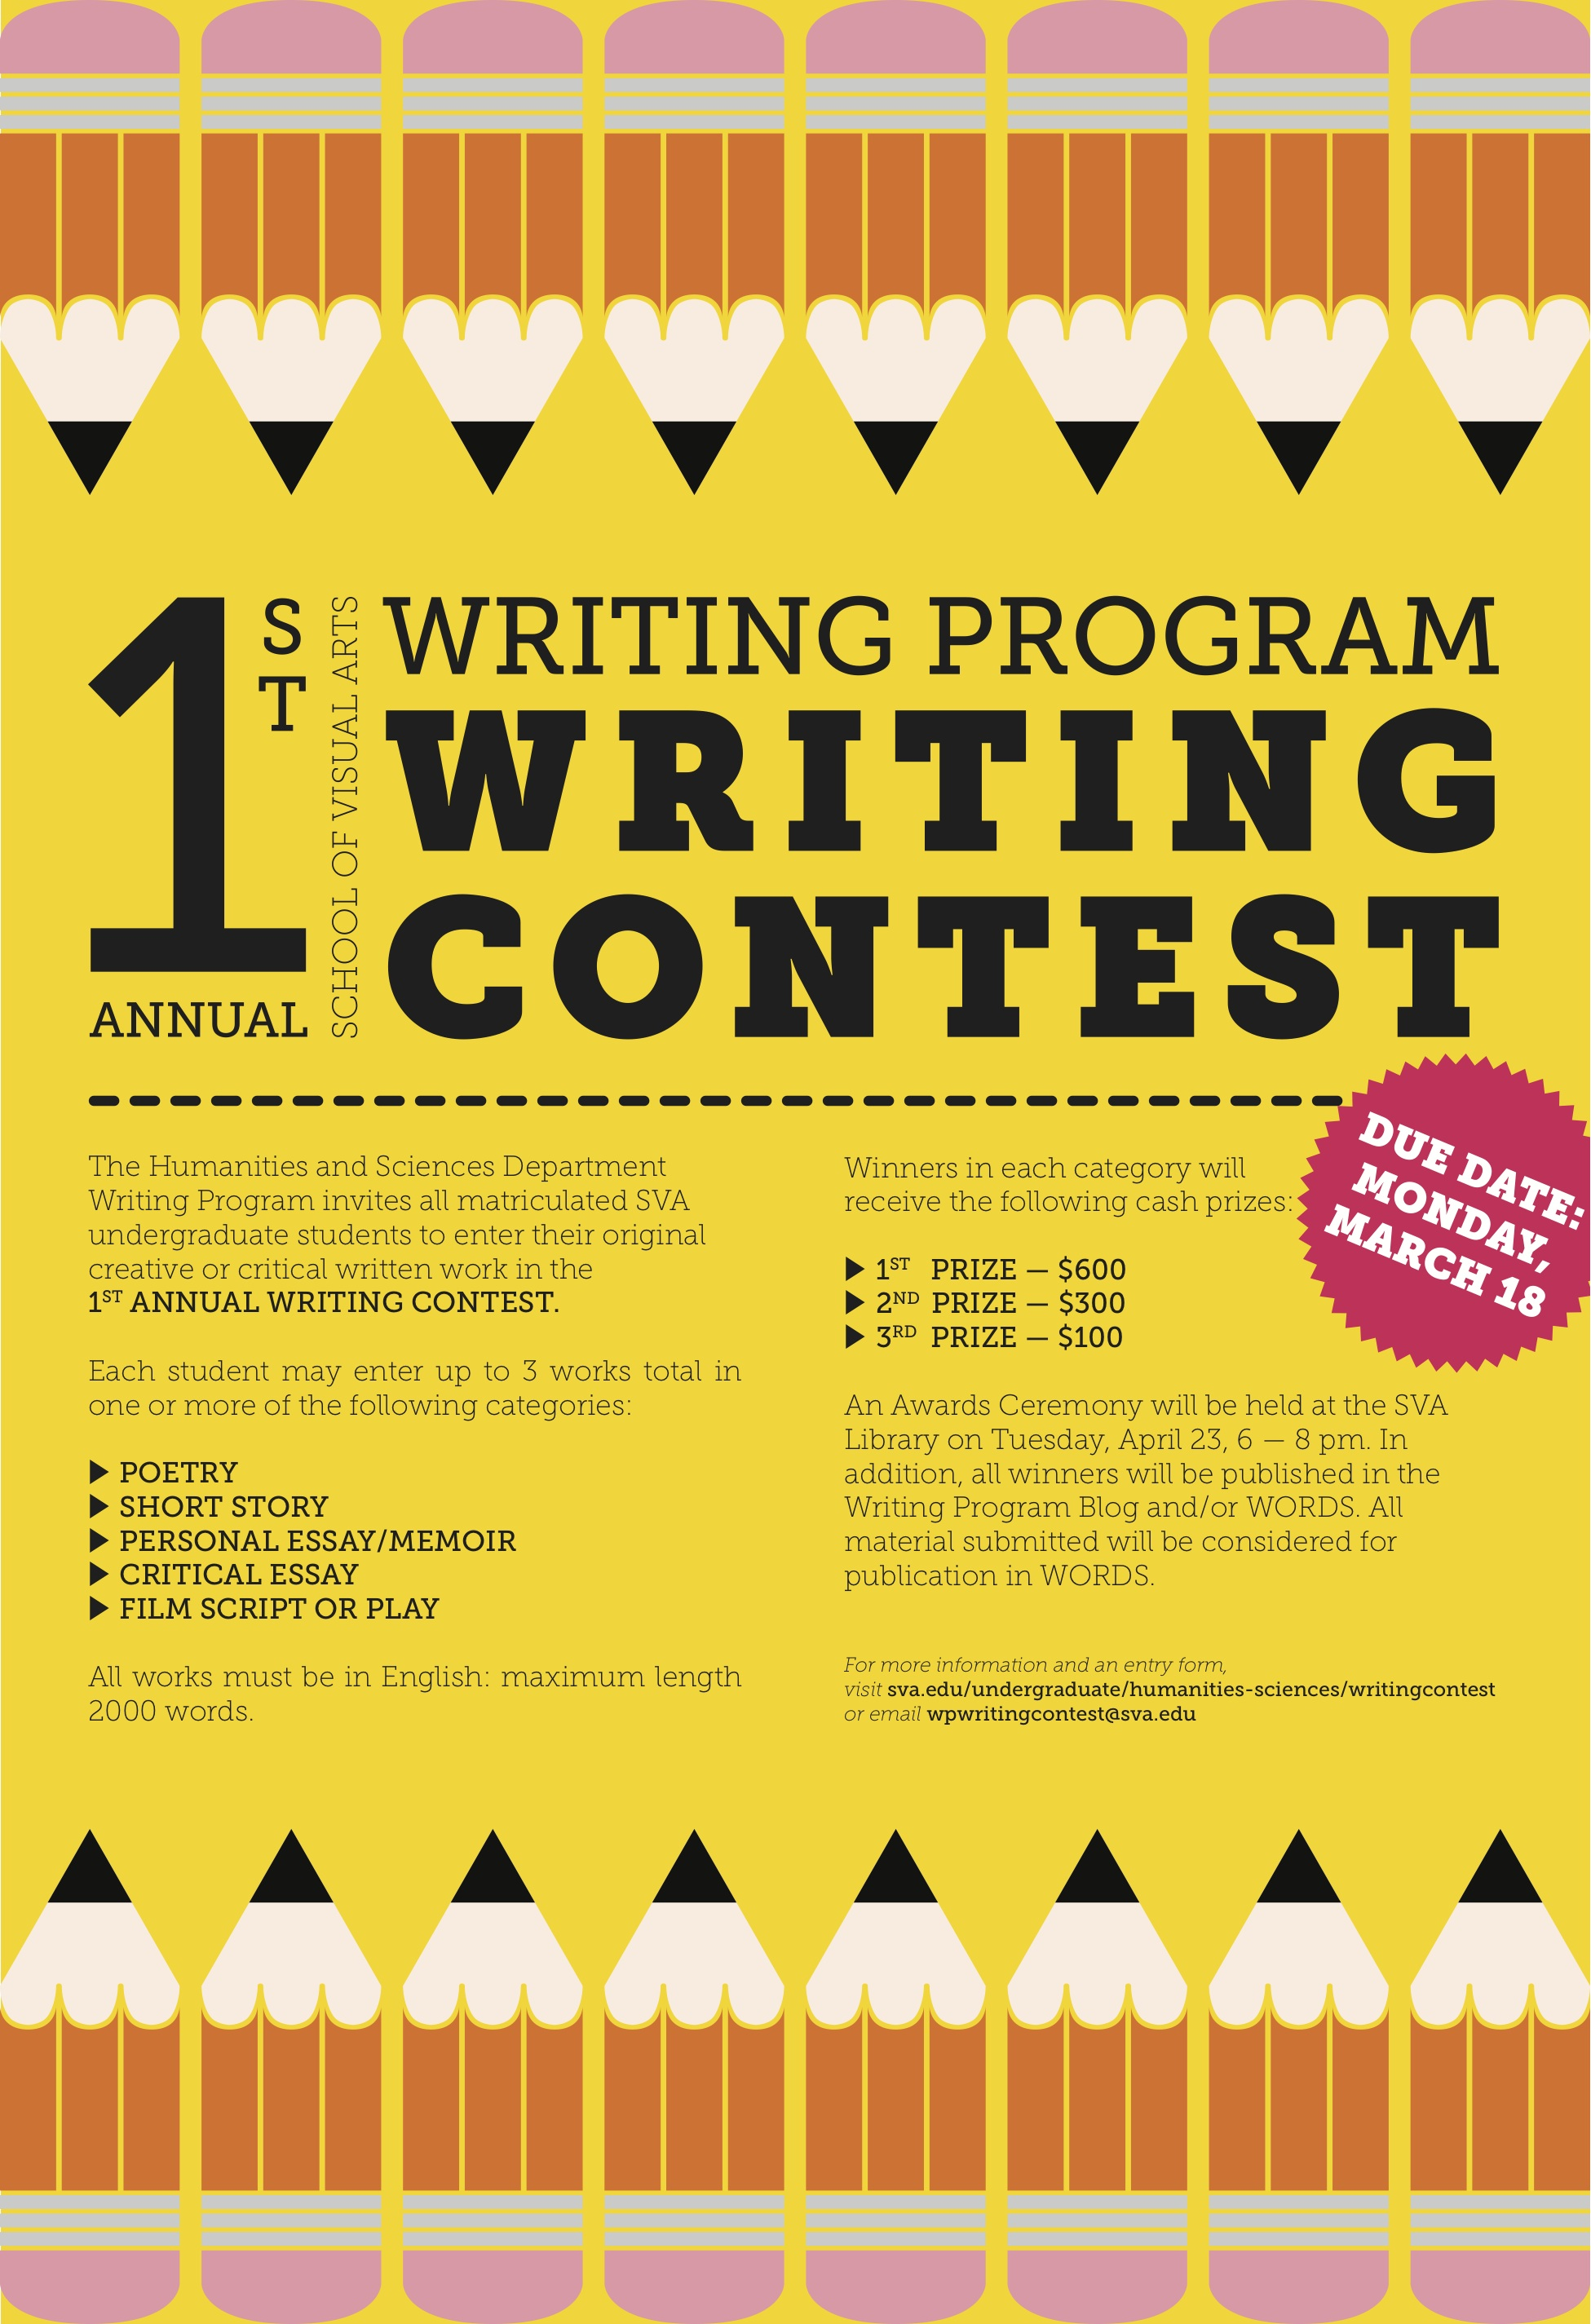 010 Essay Writing Blog 1st Annual Sva Program Contest Criteria Objectives Rubrics Tips Philippines For Nutrition Month Guidelines Mechanics Incredible International Competitions High School Students Rules By Essayhub Full